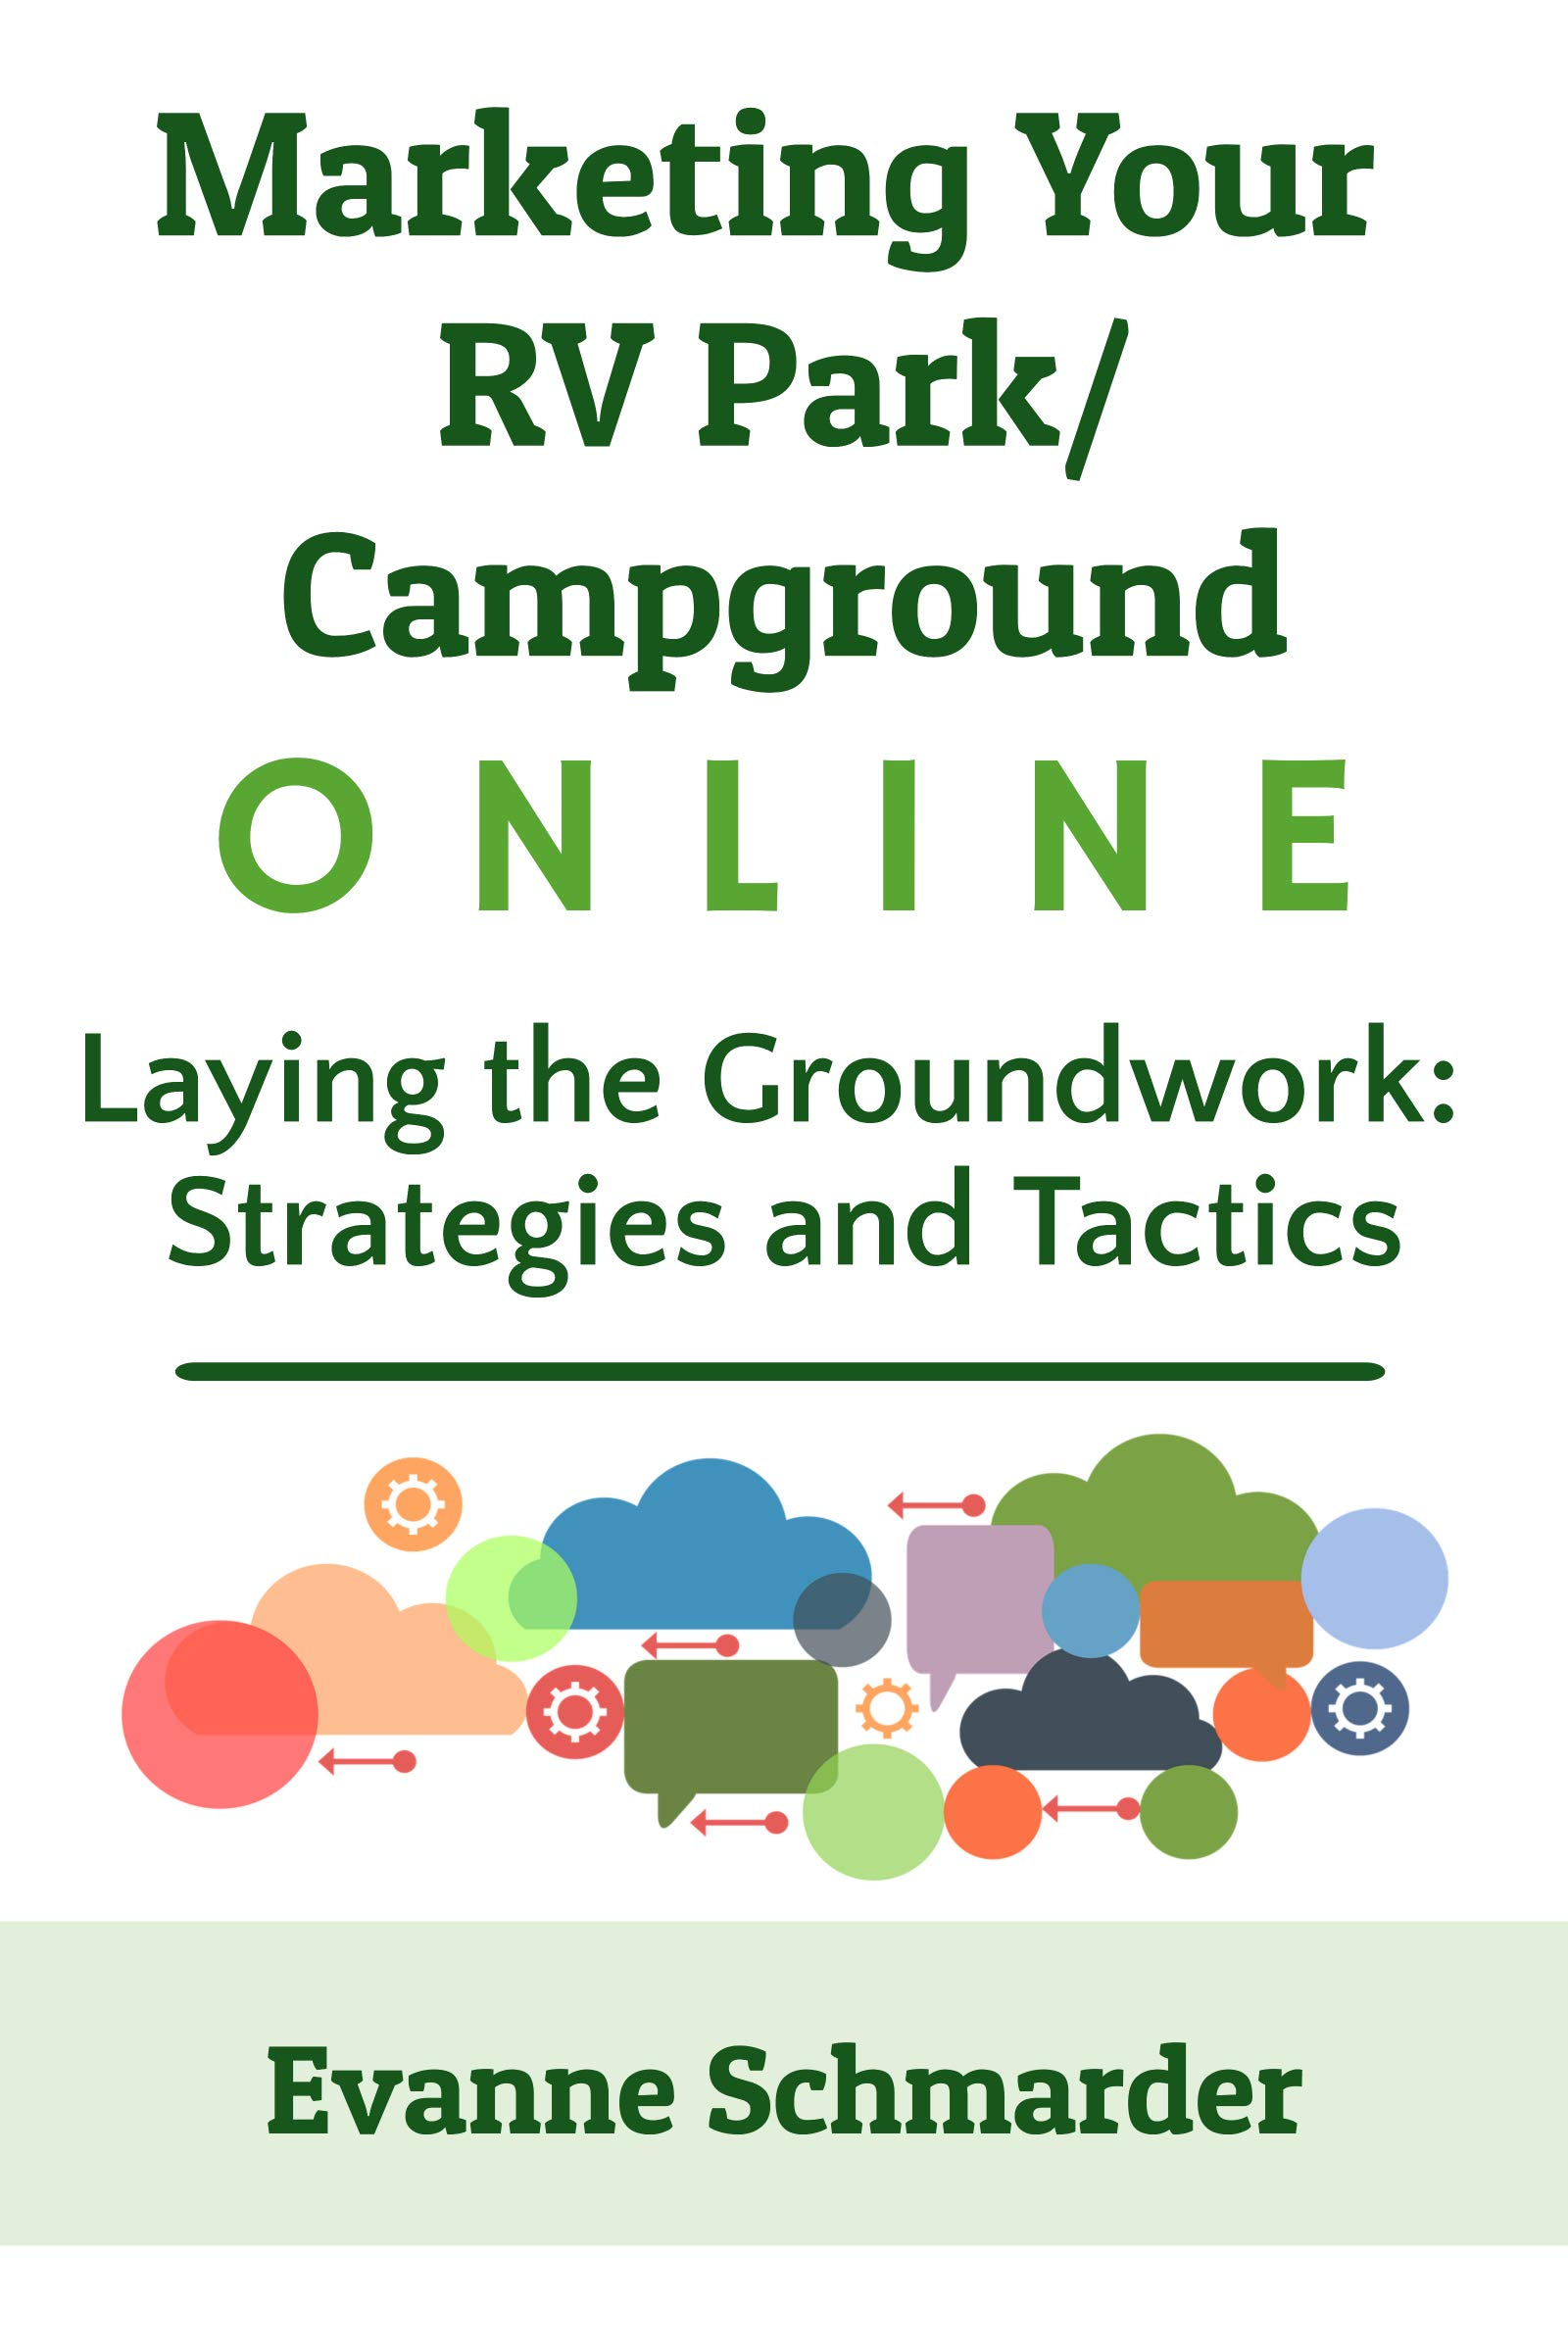 Marketing Your RV Park / Campground Online: Laying the Groundwork: Strategies and Tactics